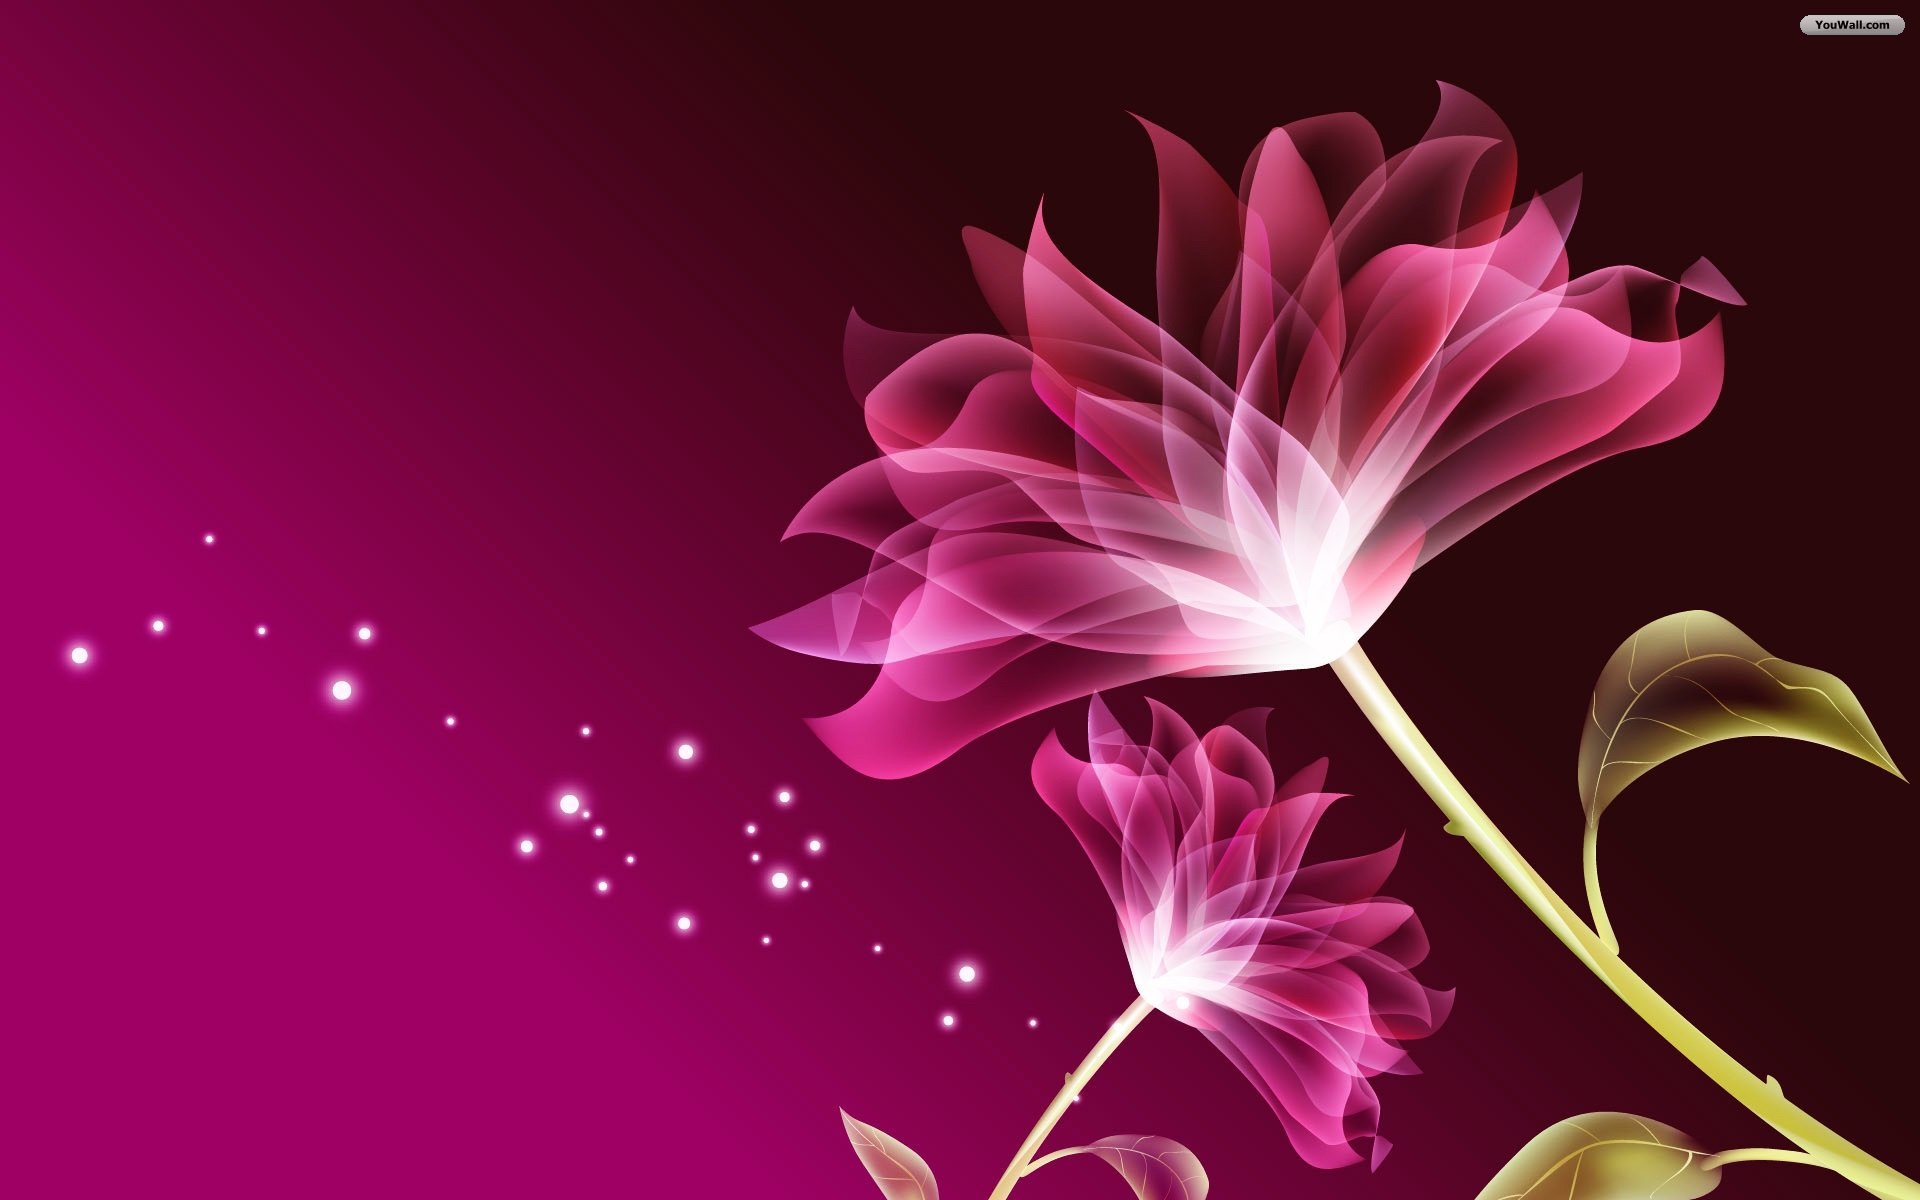 Free Wallpaper Backgrounds Flowers